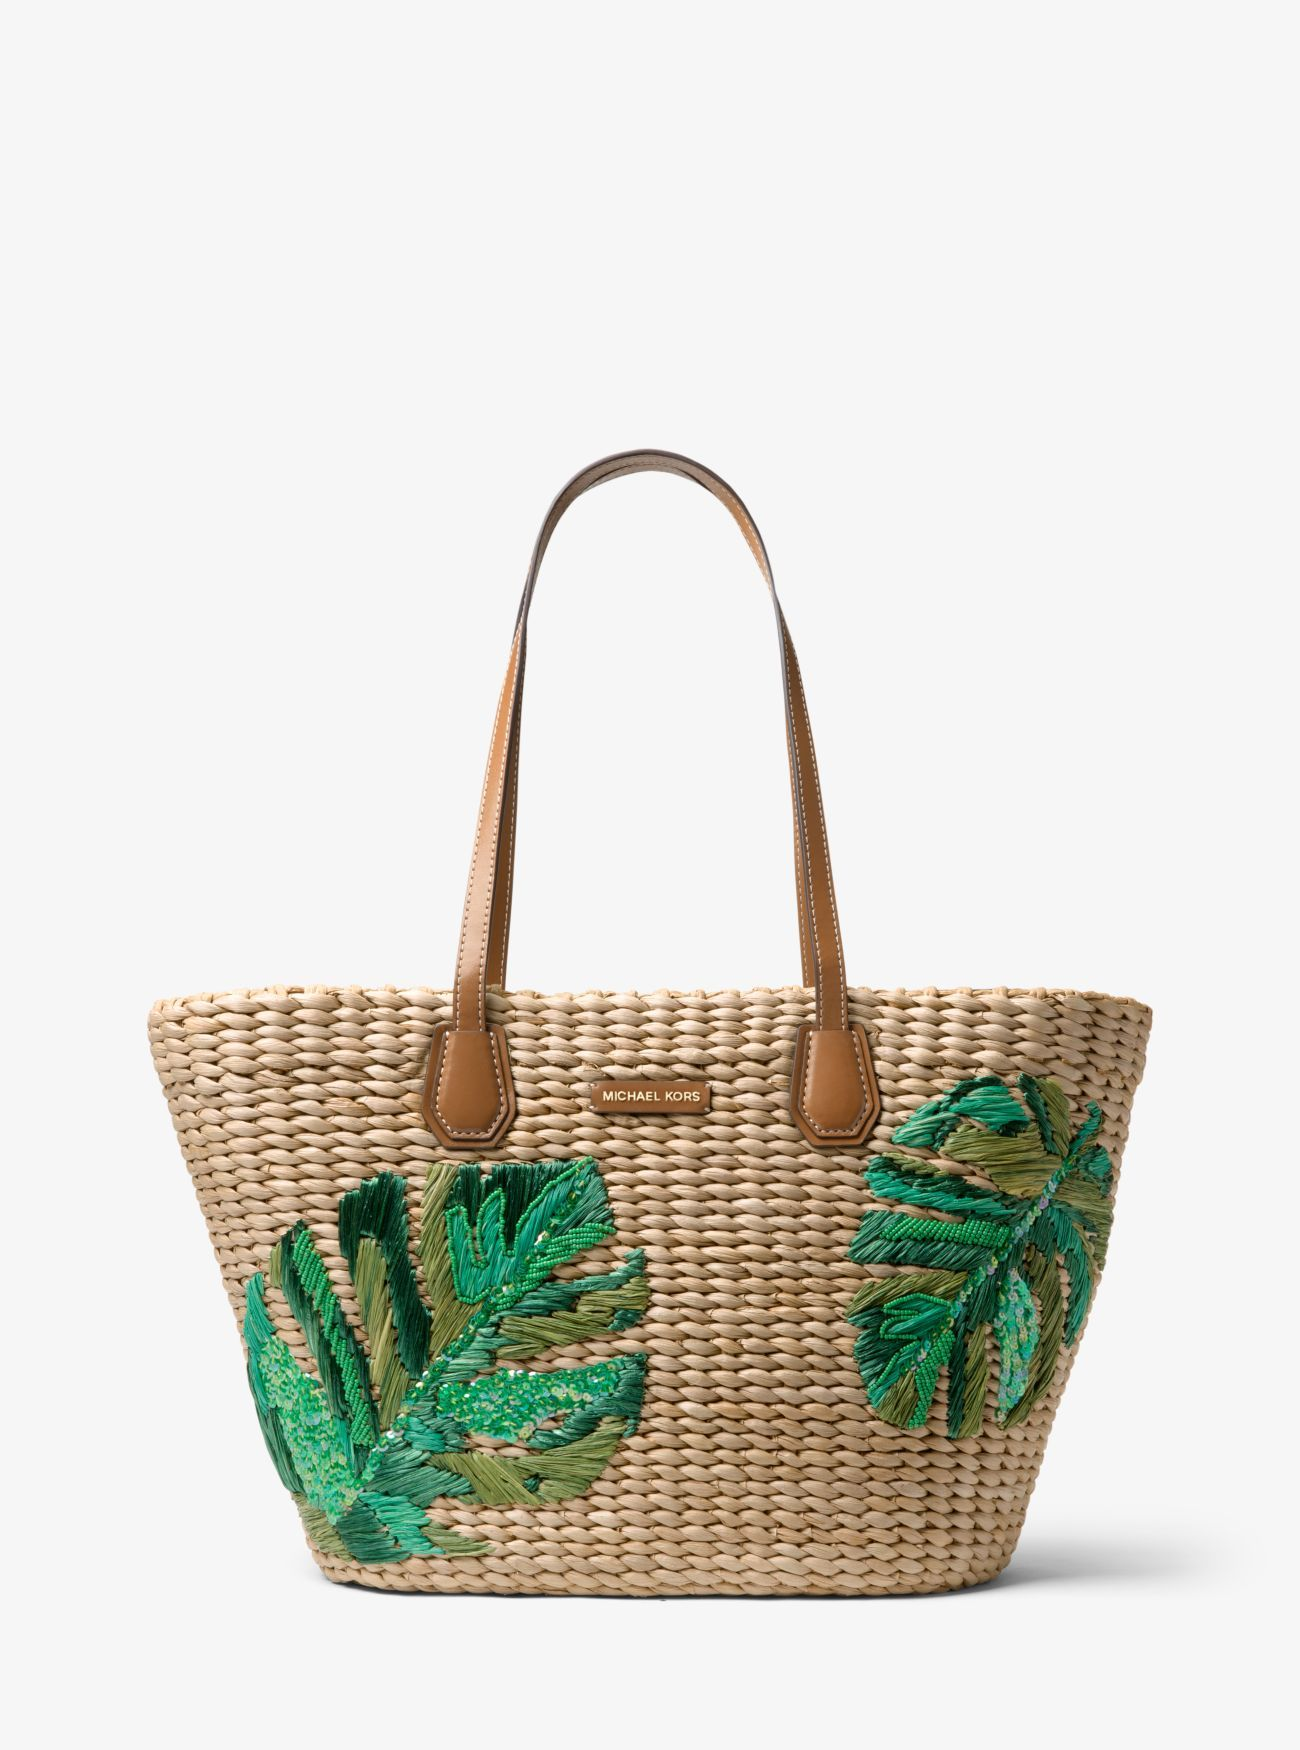 d0cfe260b1 Malibu Palm Embroidered Woven Straw Tote